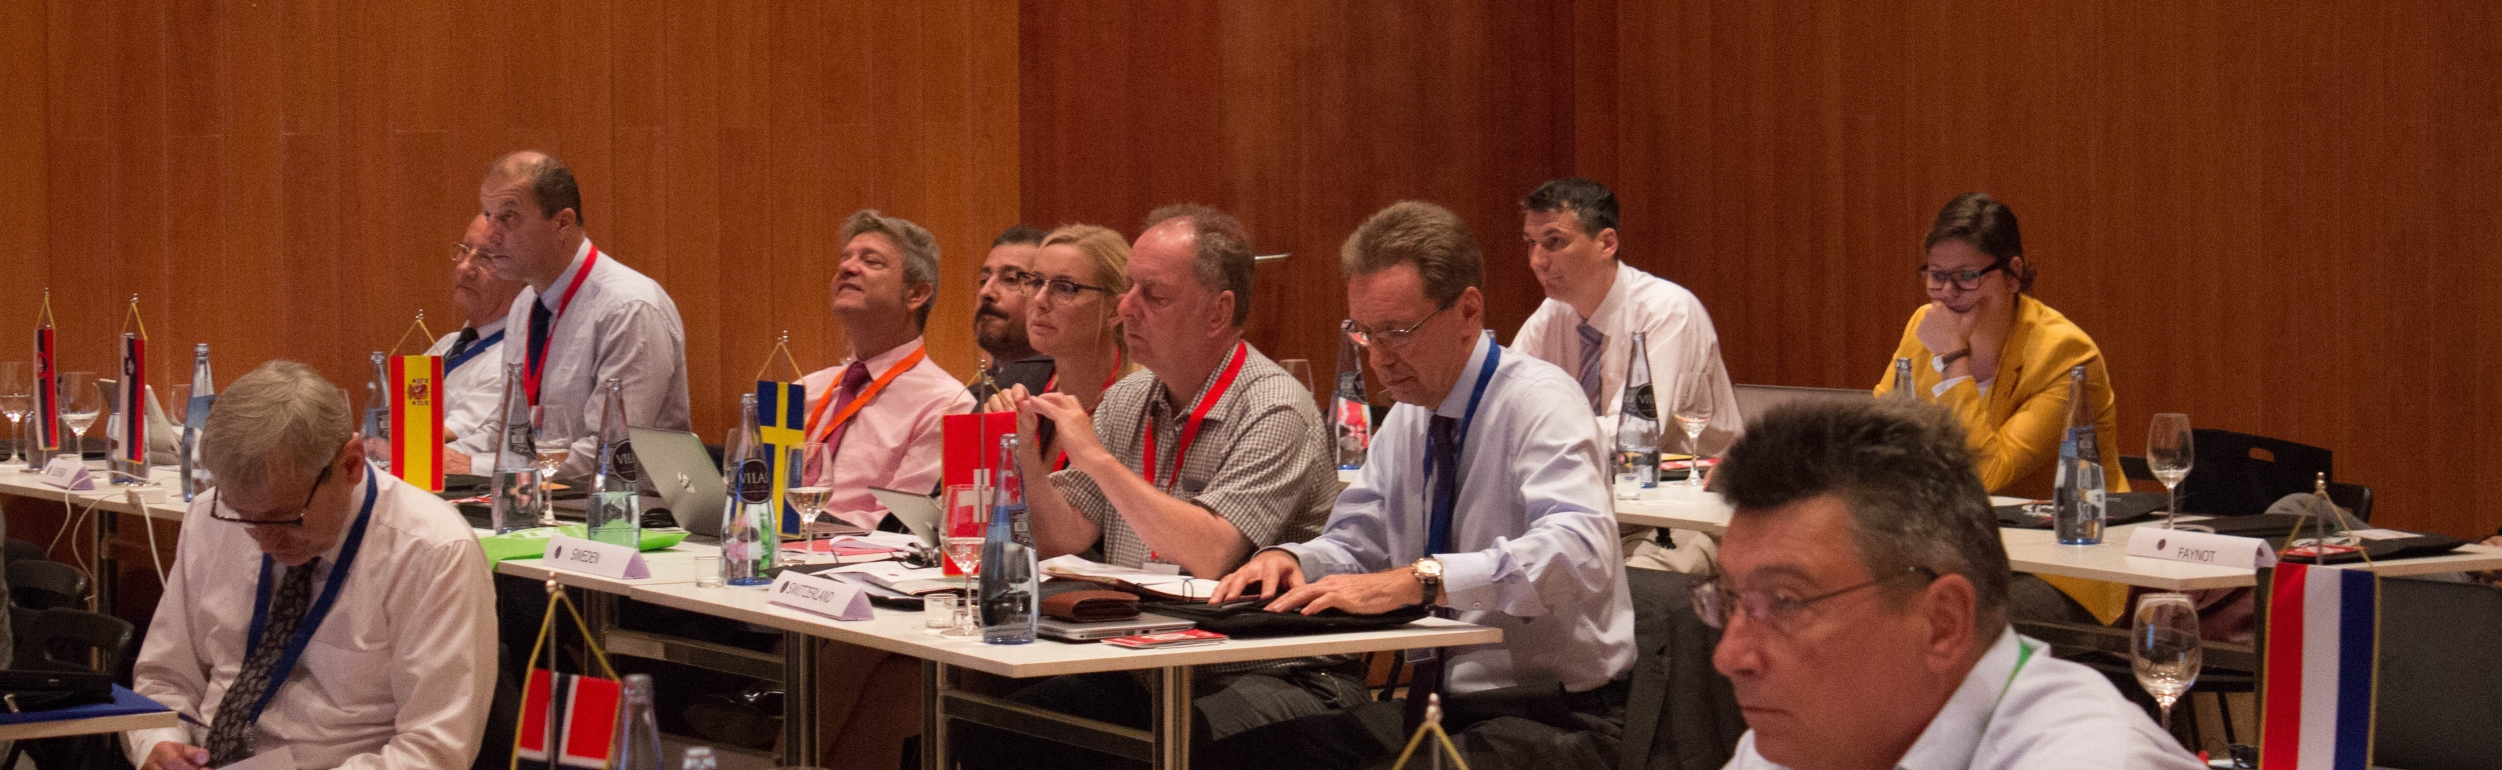 clge-general-assembly-barcelona-2018_44329727185_o.jpg